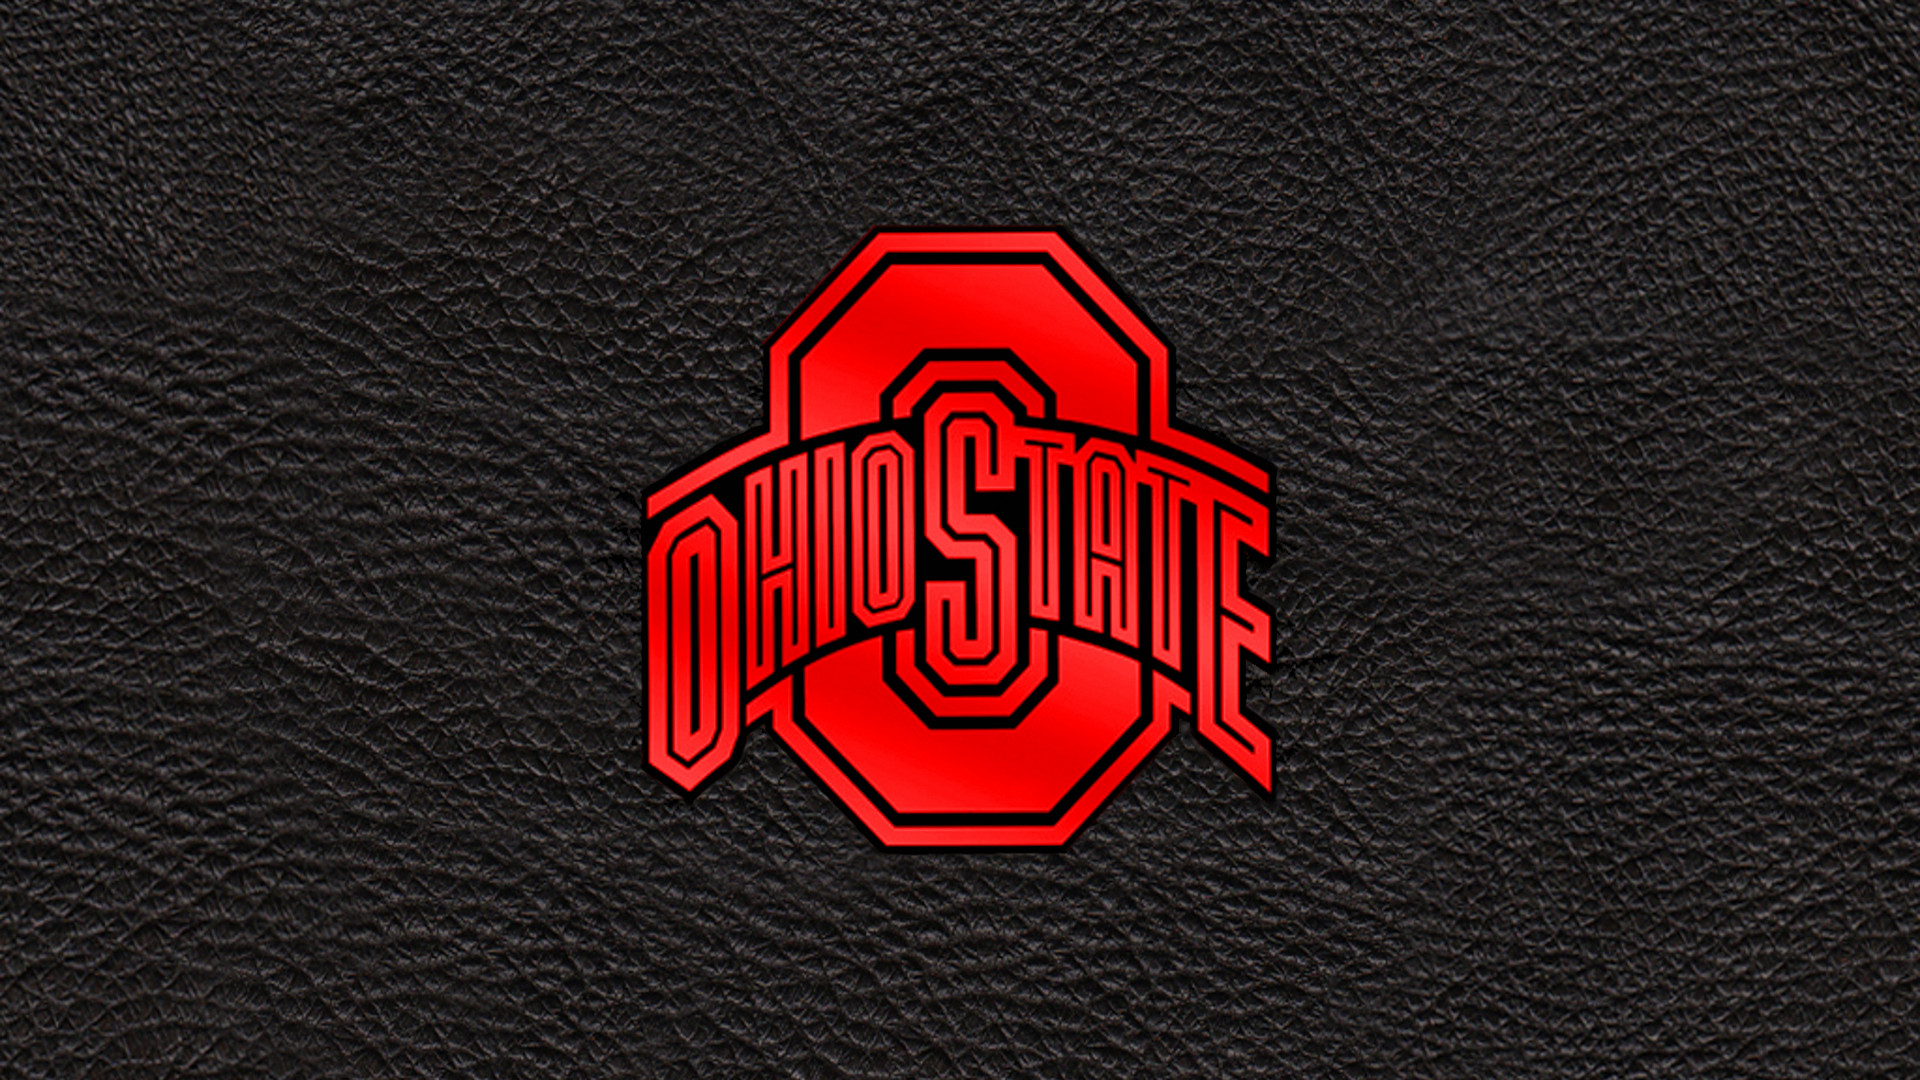 Ohio State Iphone Wallpaper 73 Images